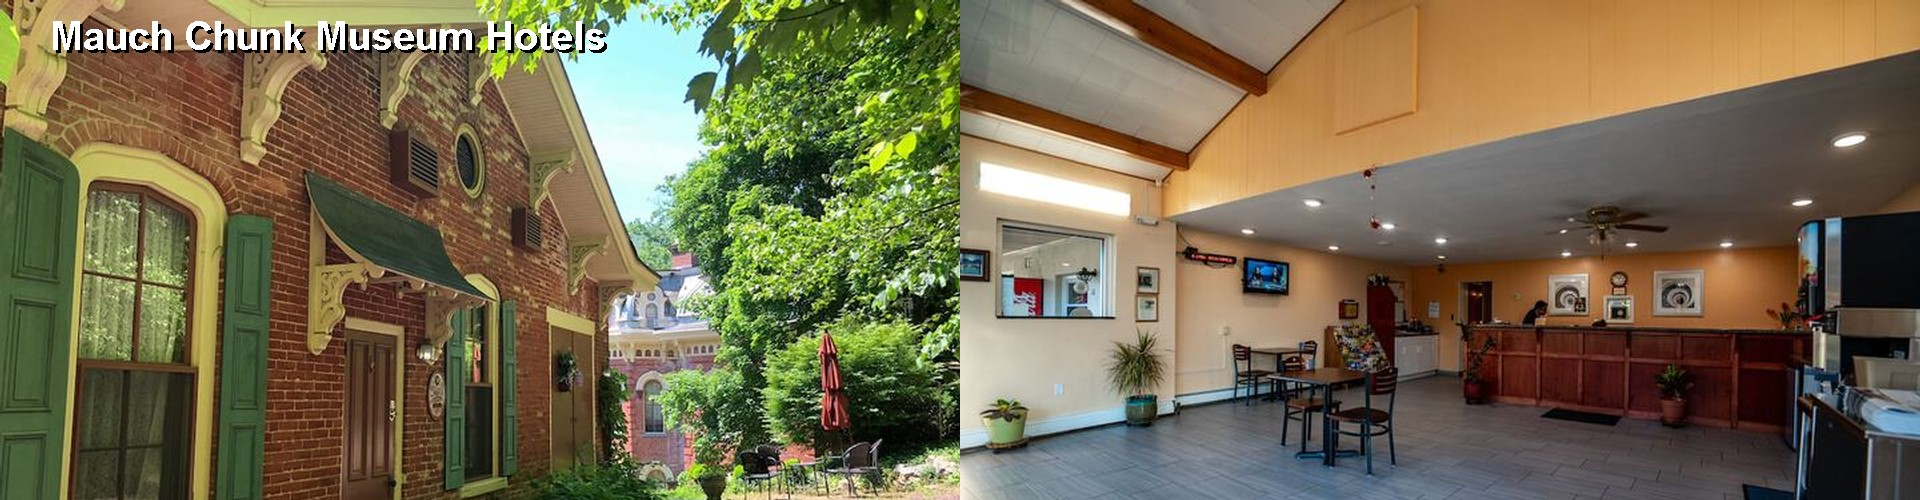 4 Best Hotels near Mauch Chunk Museum